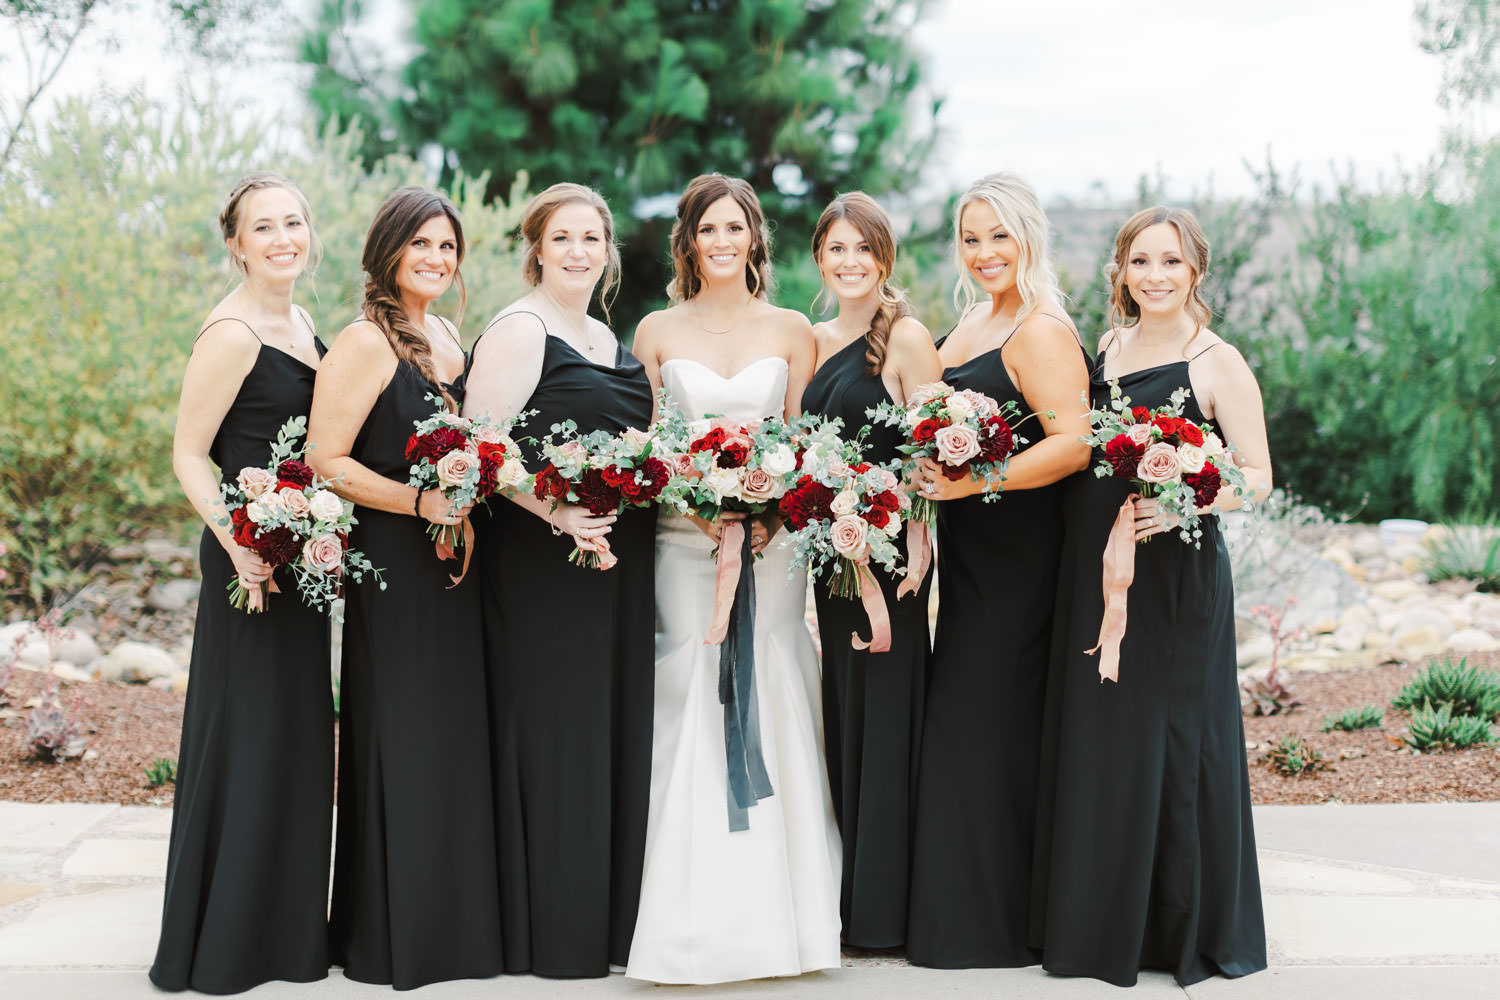 Bride in Anne Barge sweetheart gown with red ivory and mauve bouquet and bridesmaids in black dresses at Green Acre Campus Pointe Wedding, photo by Cavin Elizabeth Photography